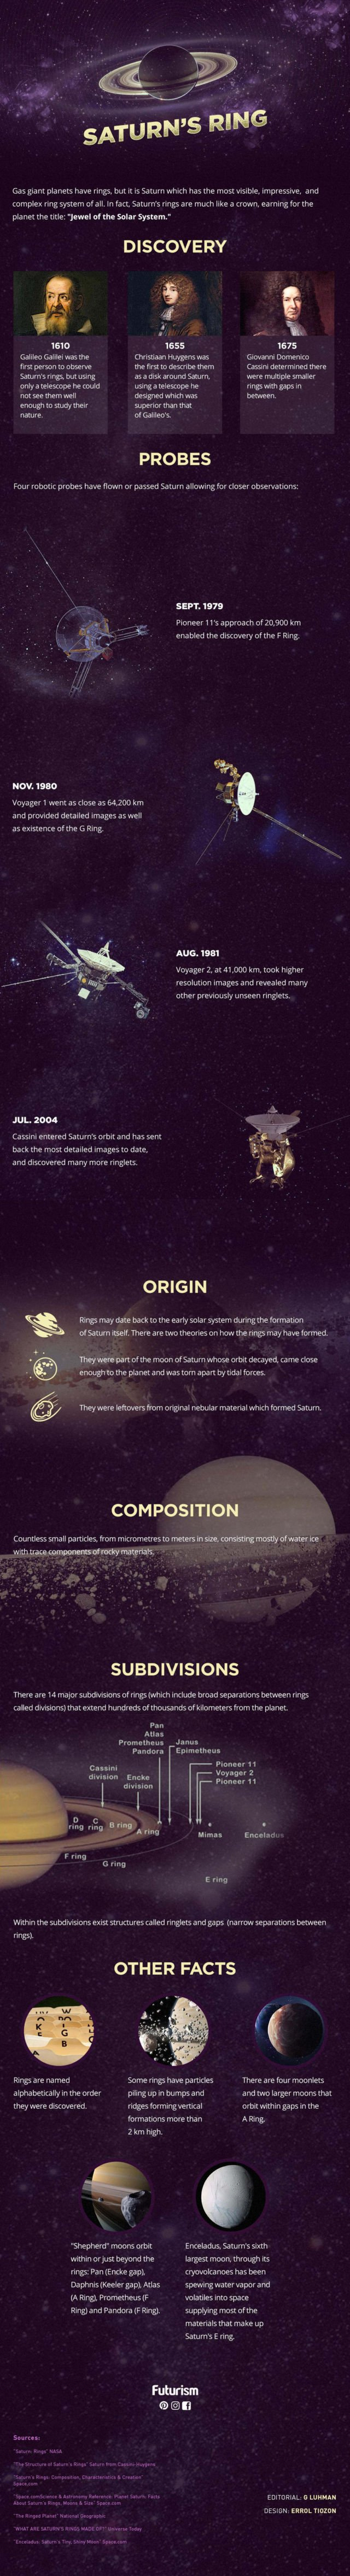 Saturn's Rings - infographic